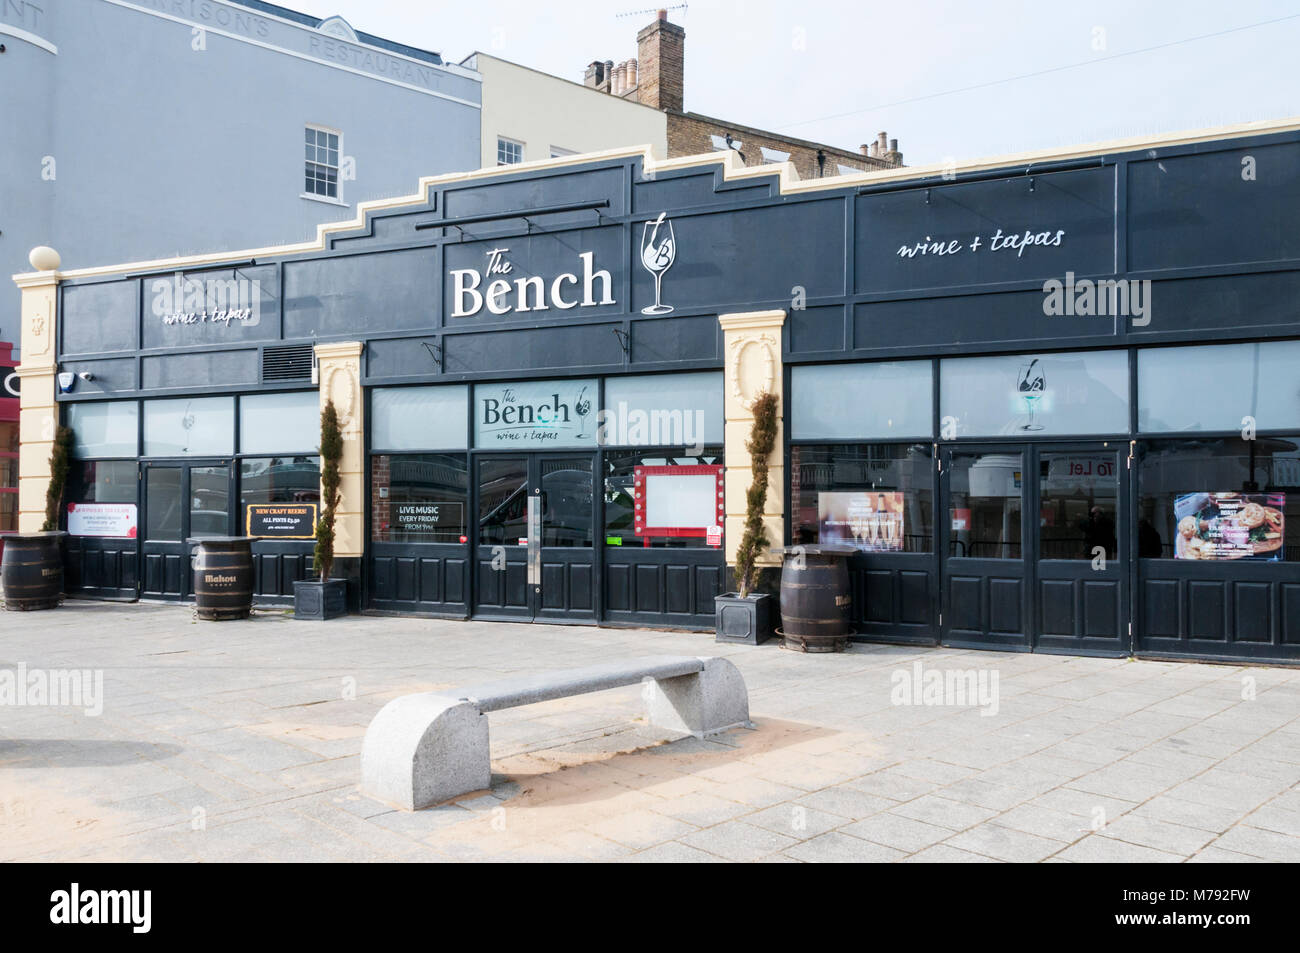 The Bench Wine Bar & Tapas Restaurant in Harbour Parade, Ramsgate - Stock Image